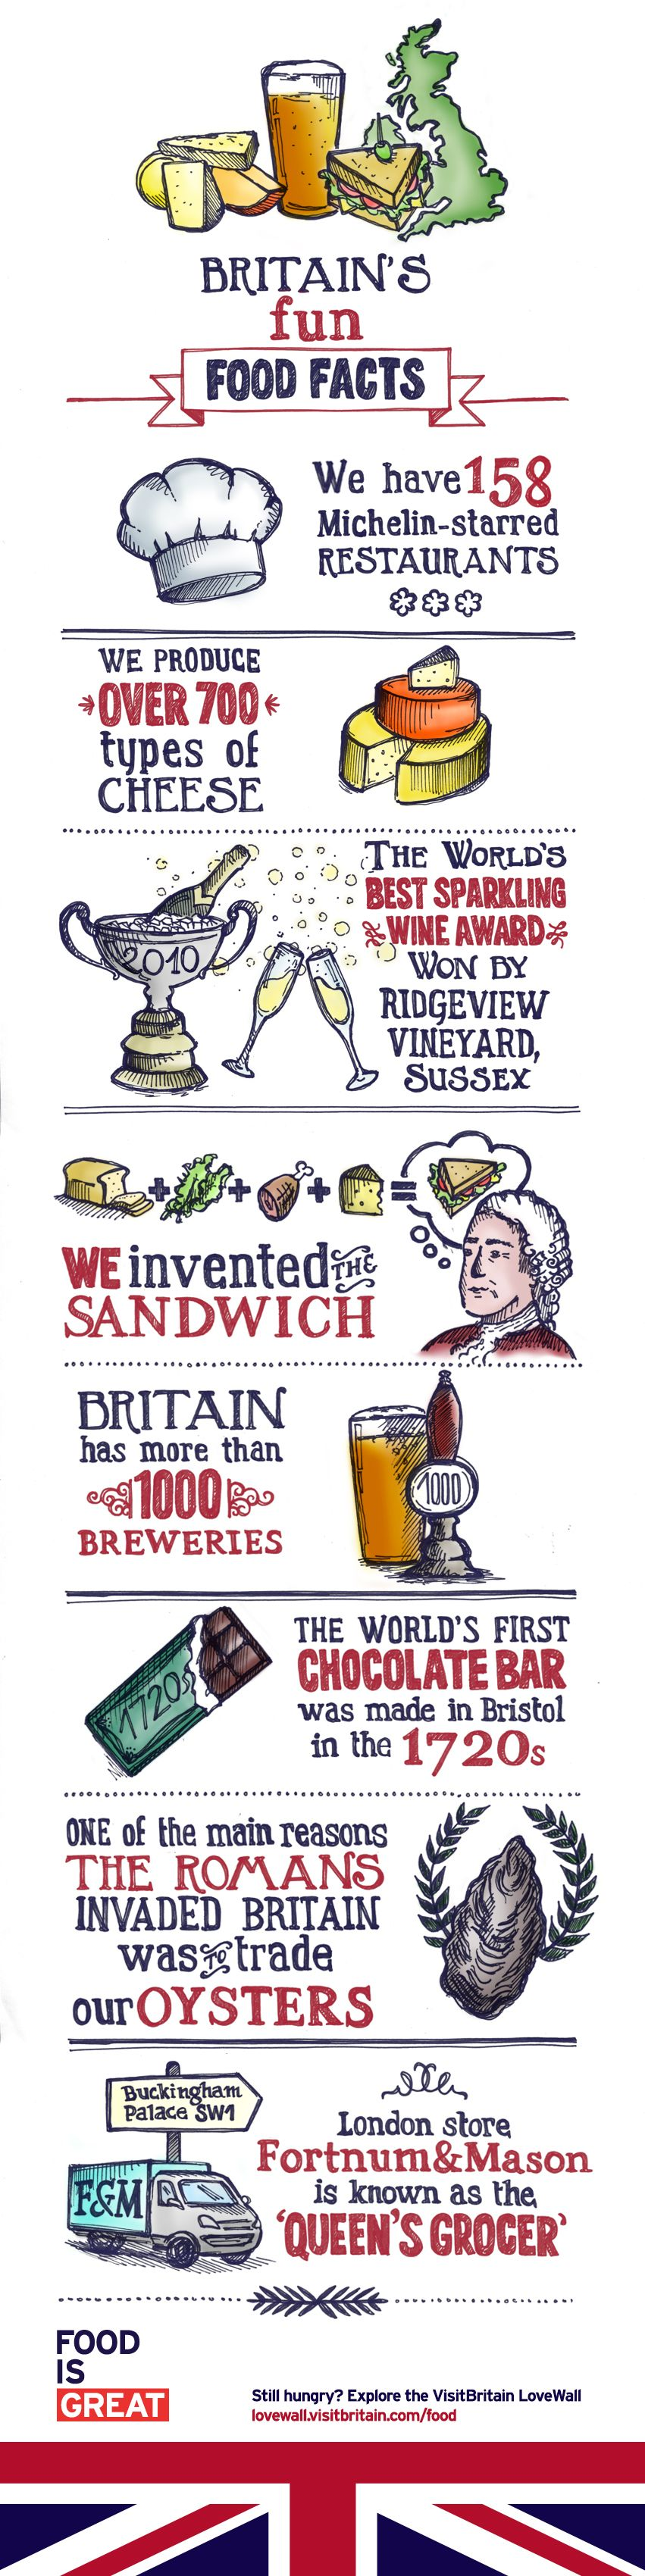 Fun British Food Facts I Personally Disagree With The Sandwich One Yes Its